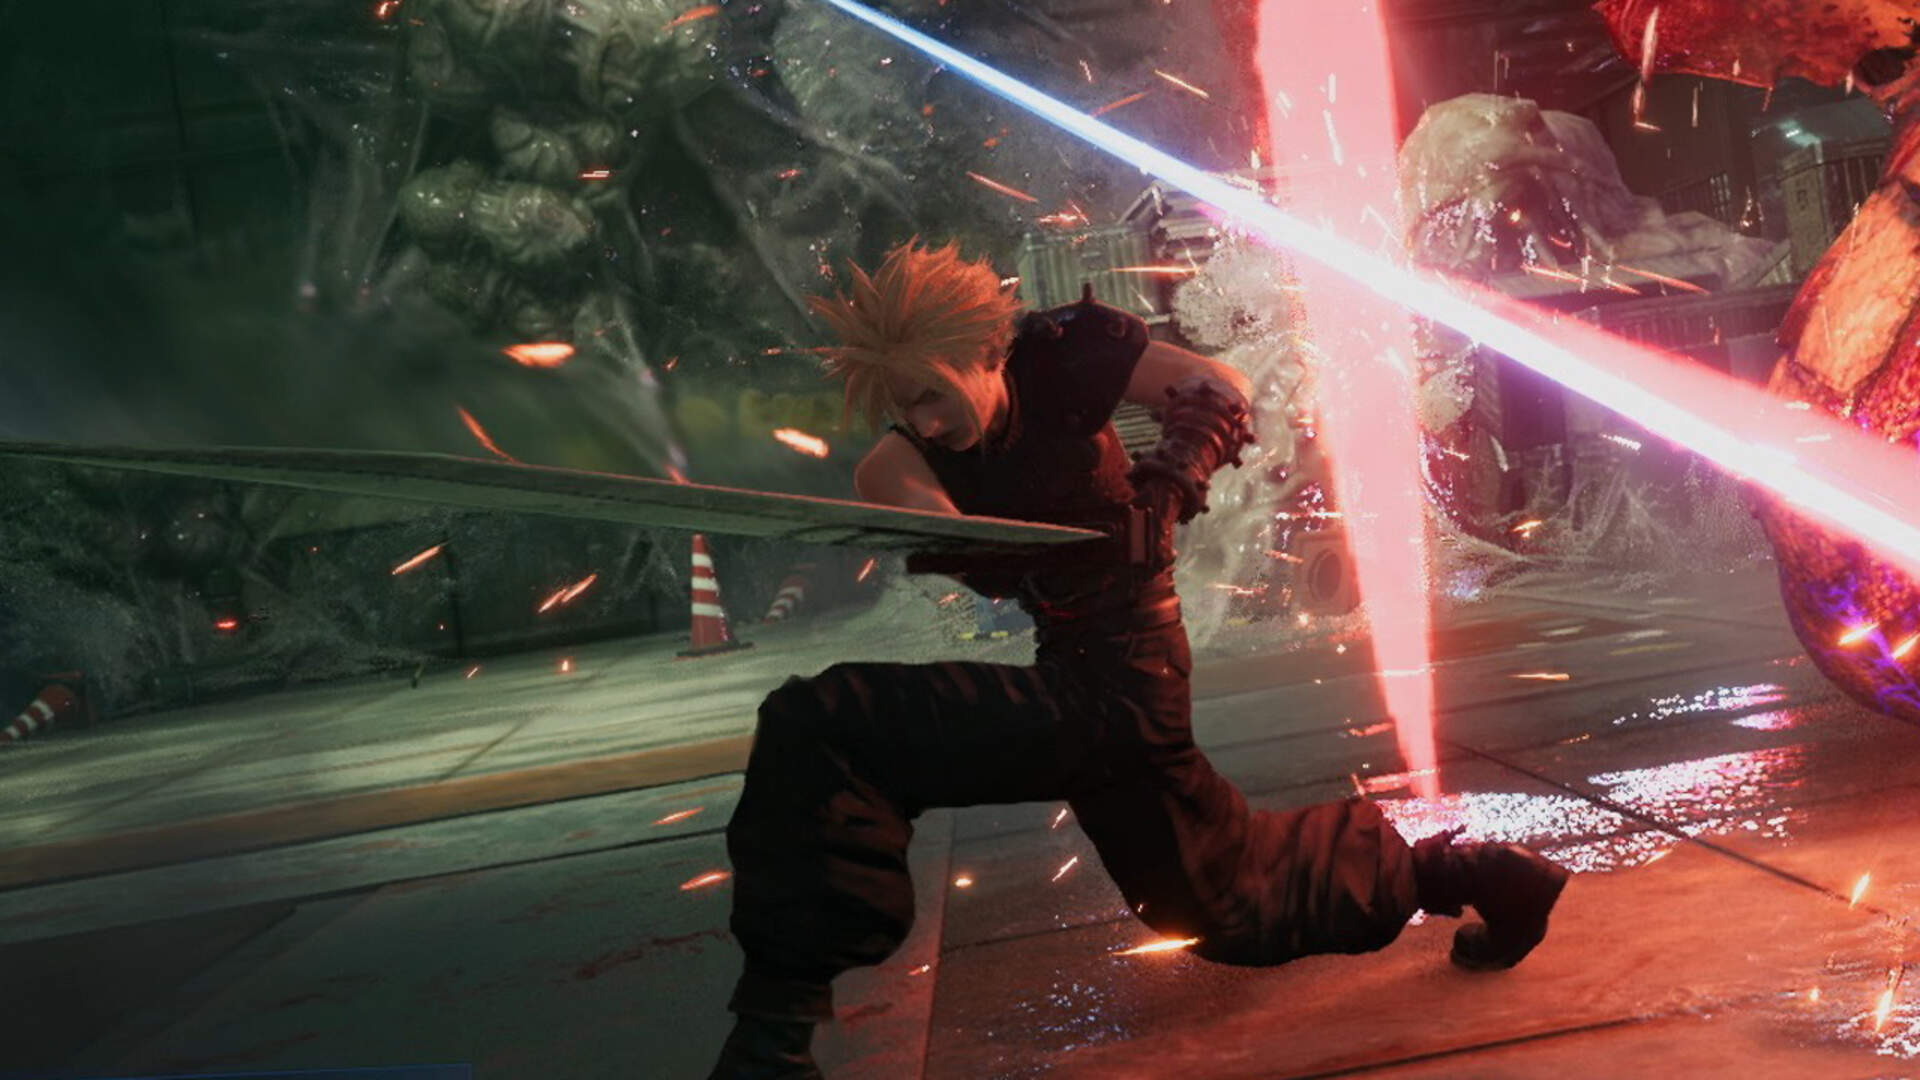 Final Fantasy 7 Remake's Decision to Drop Its Turn-Based RPG Combat is Sadly Ironic